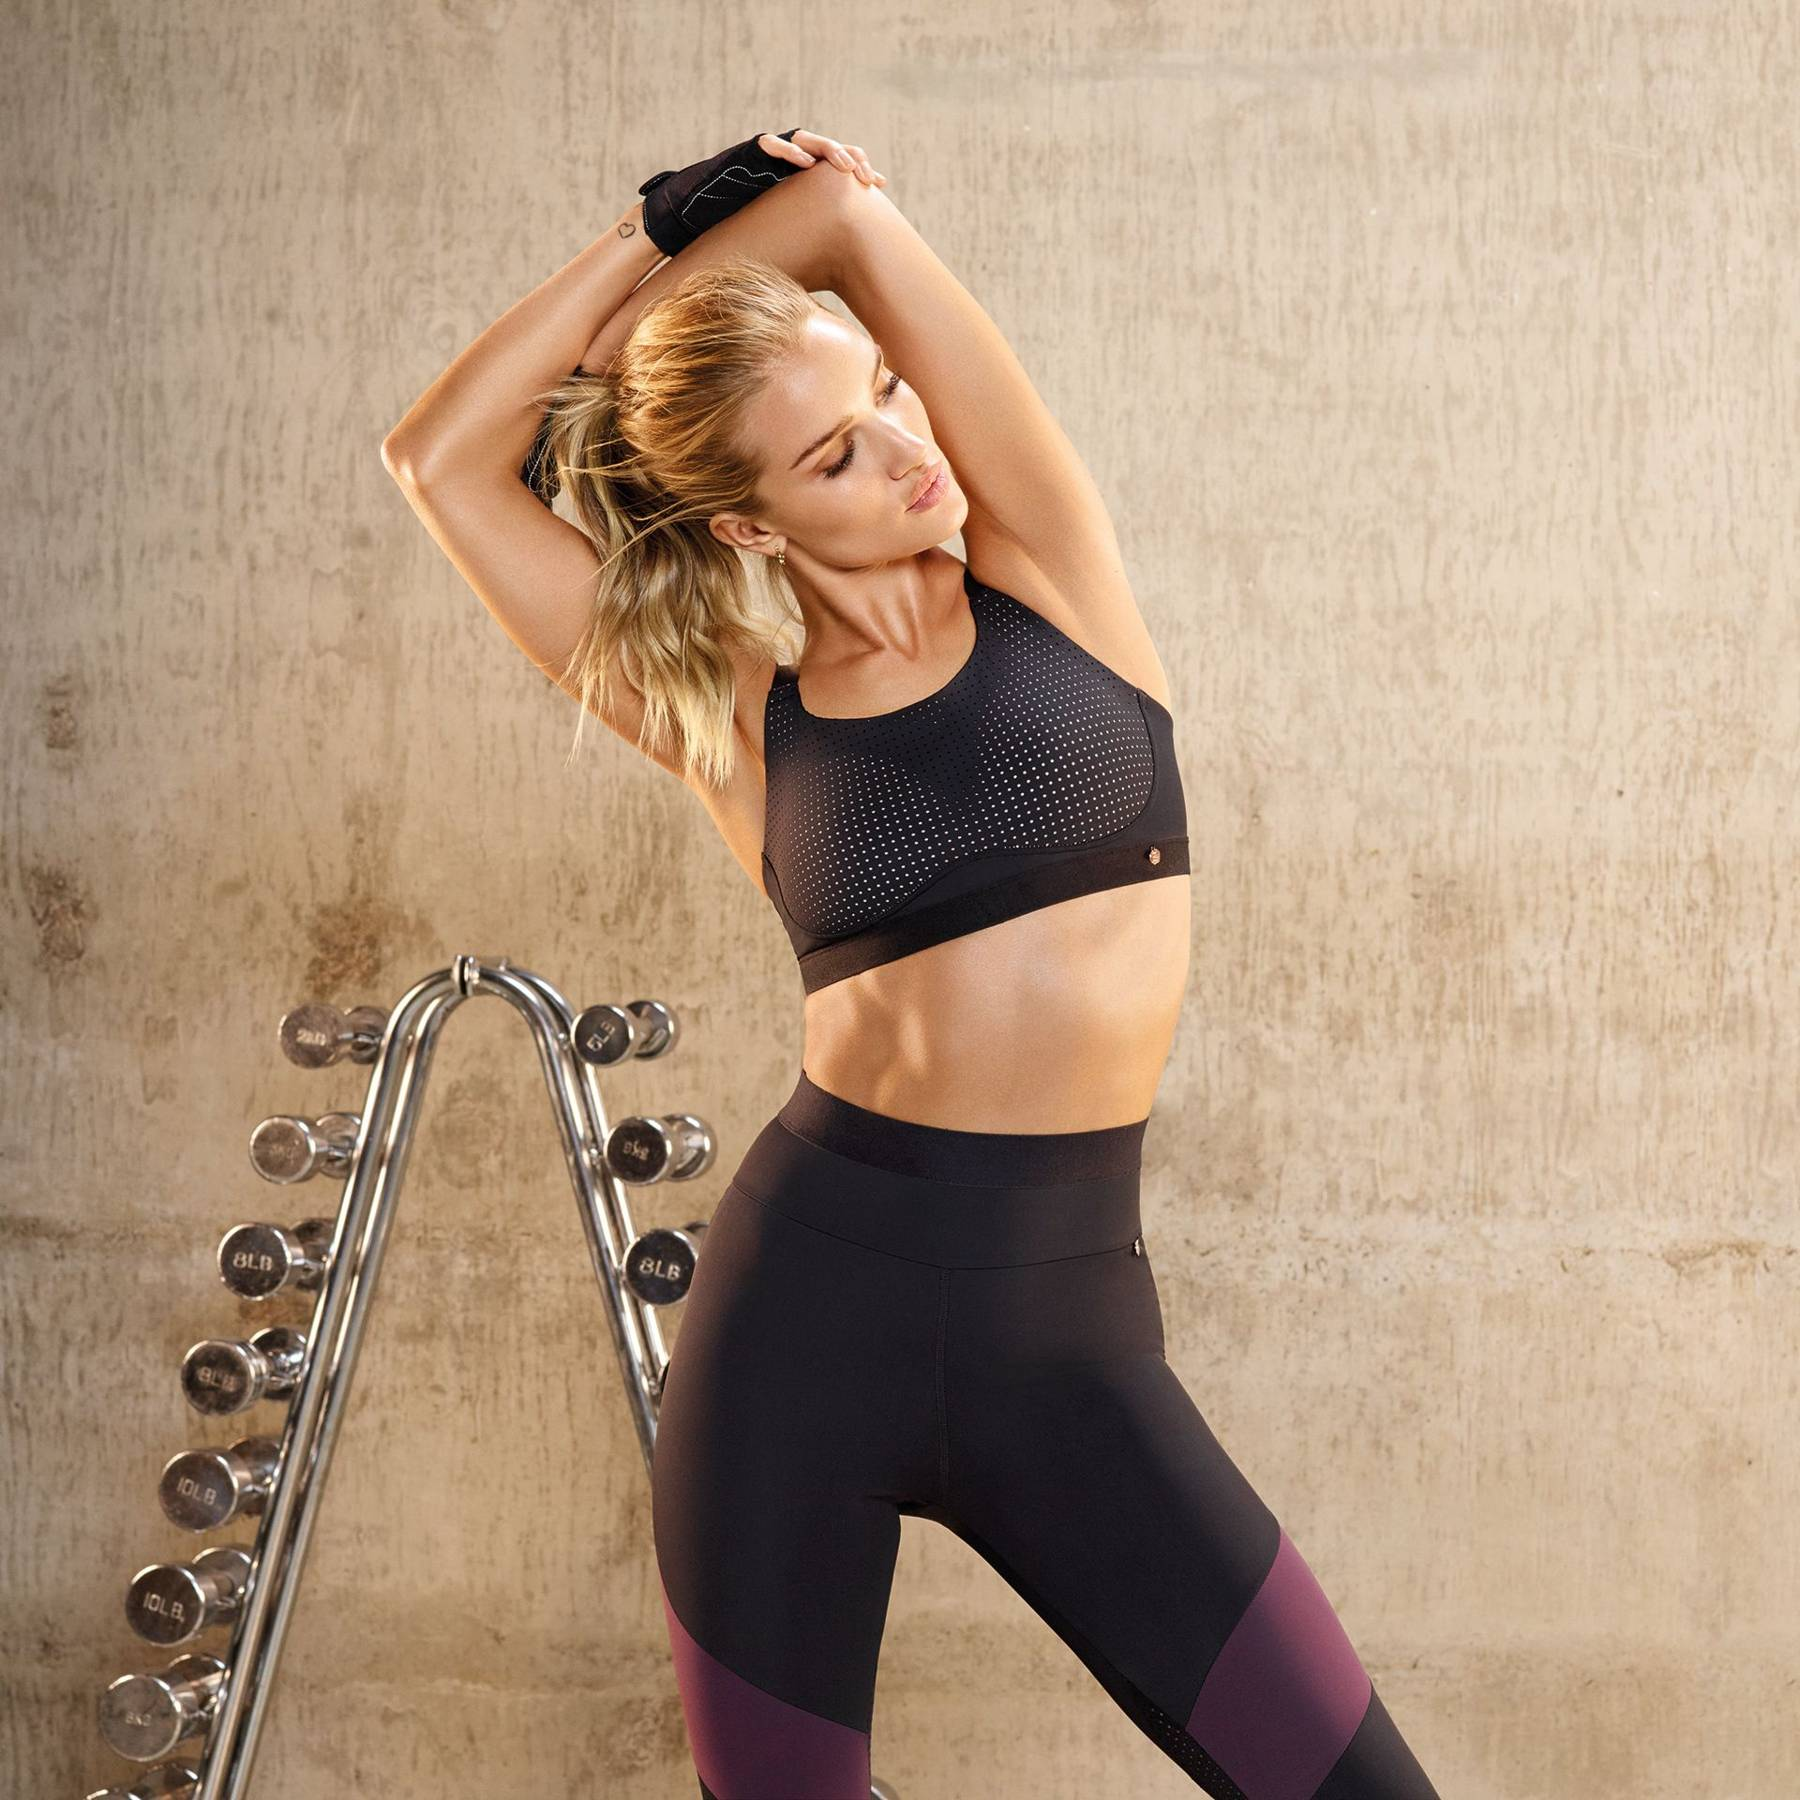 5b5bef8e5b Rosie Huntington-Whiteley Marks Spencers Activewear Workout Gear ...